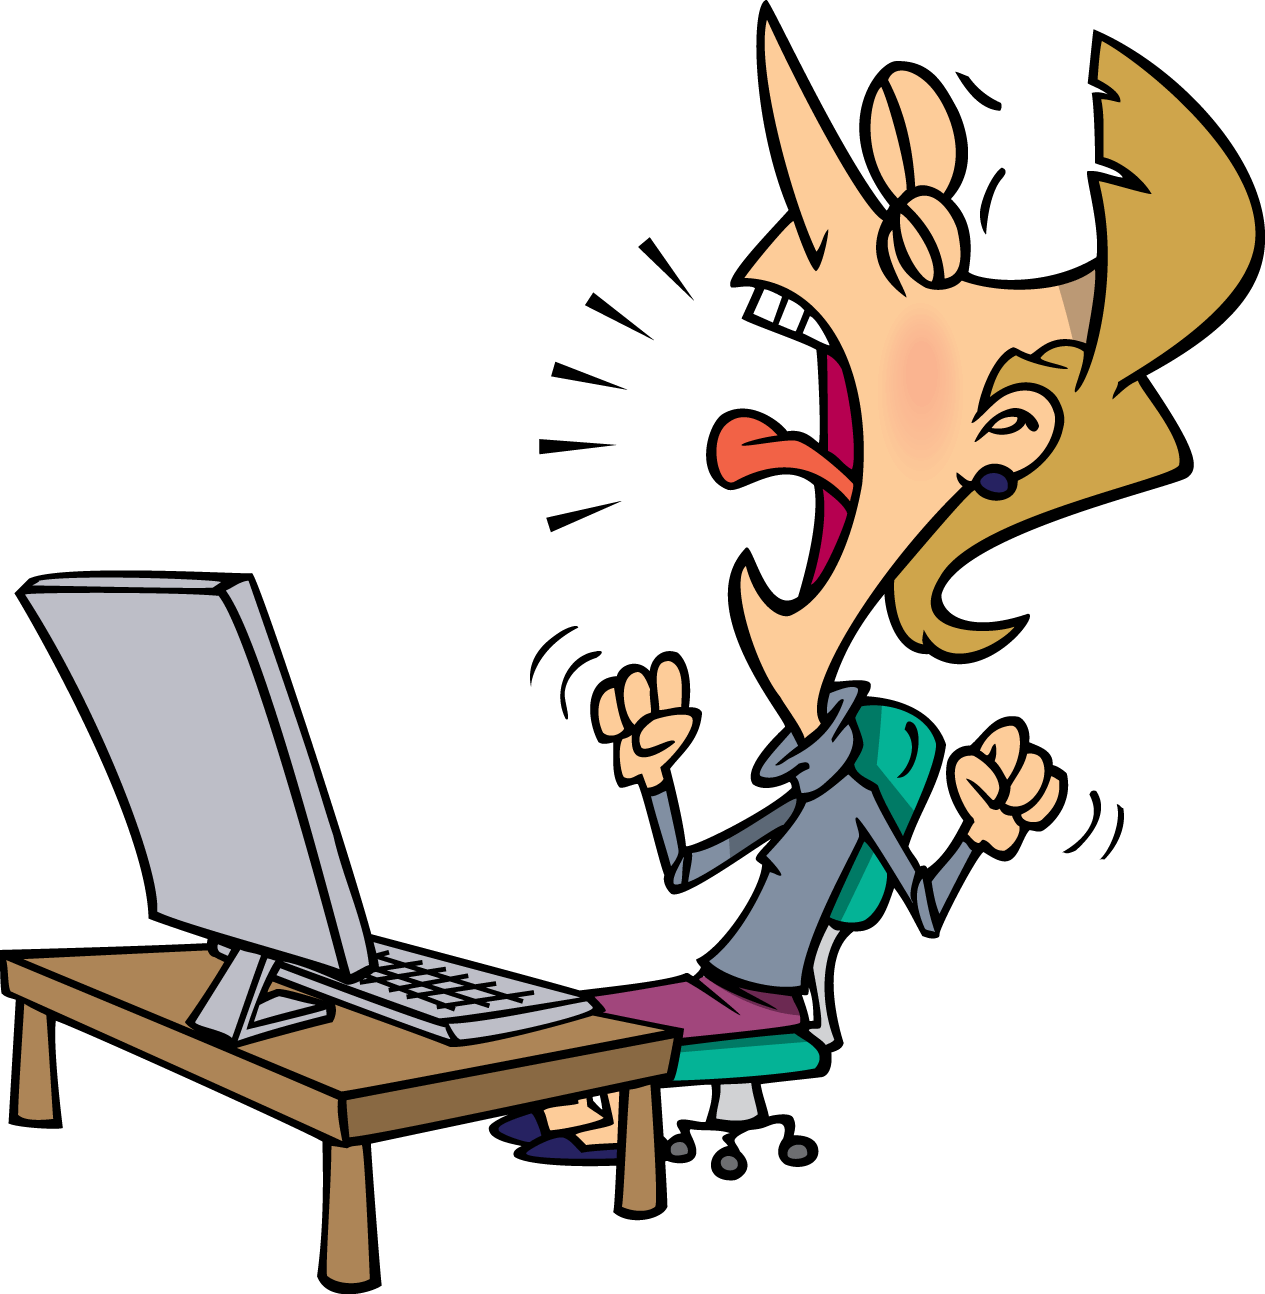 Frustrated clipart female. Collection of free computer